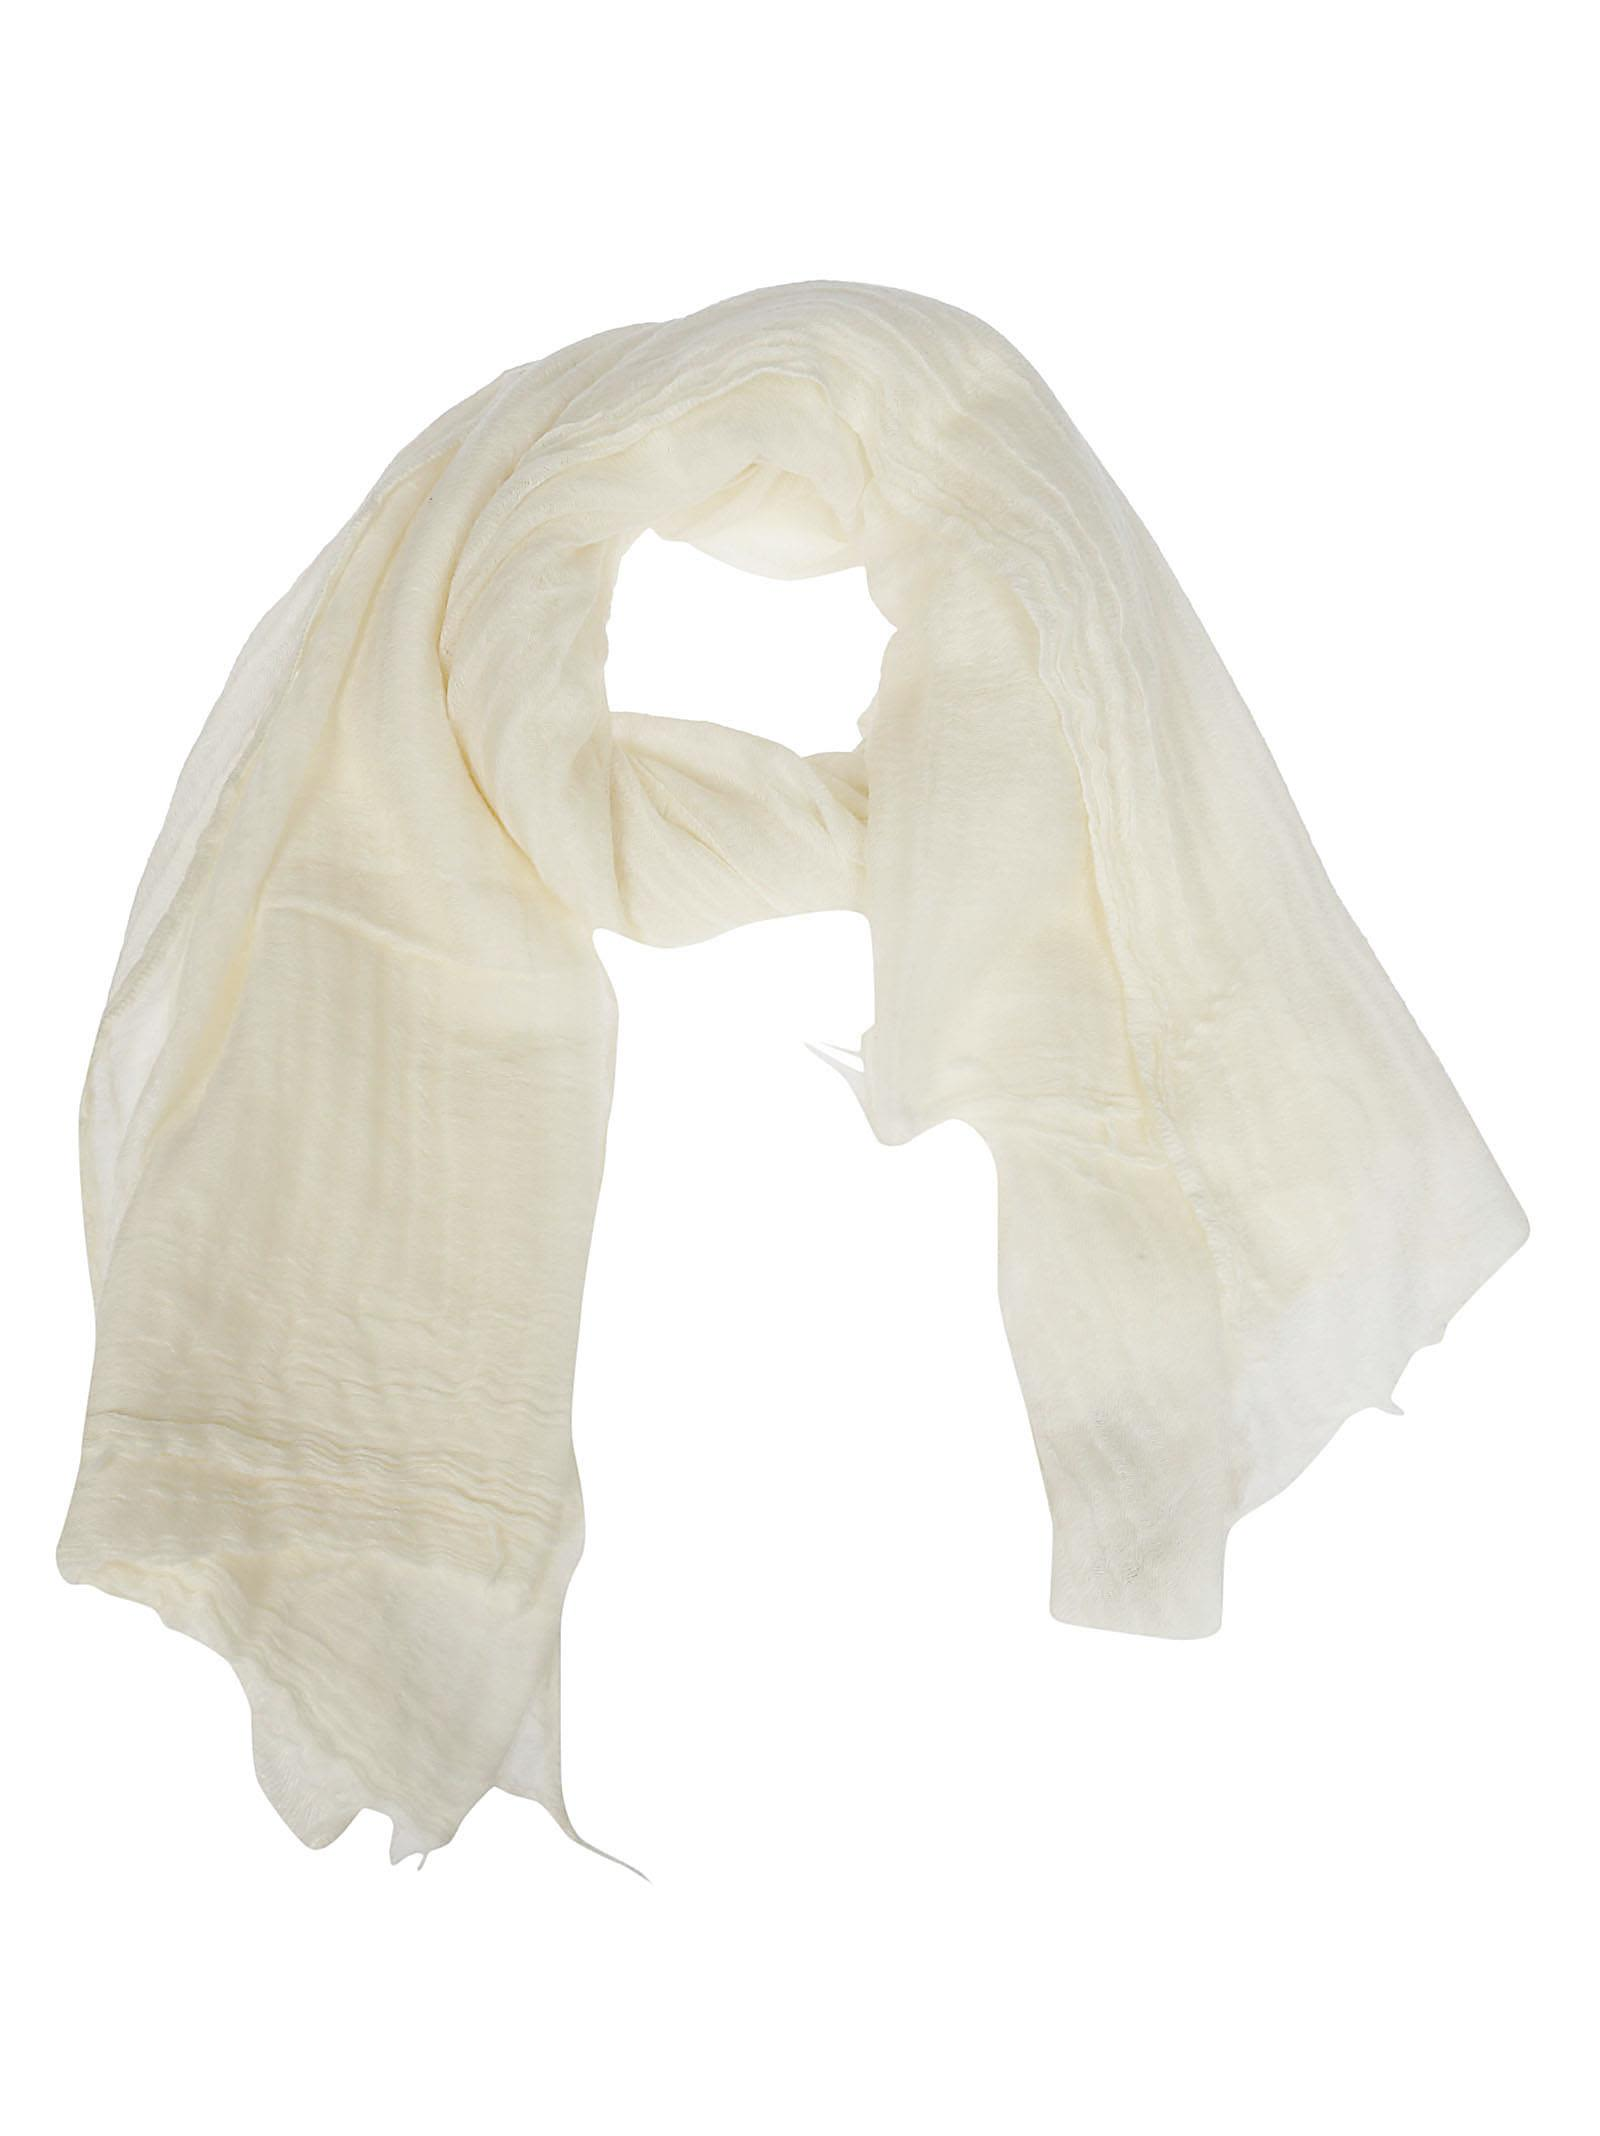 DESTIN SURL Destin Pleated Scarf in White